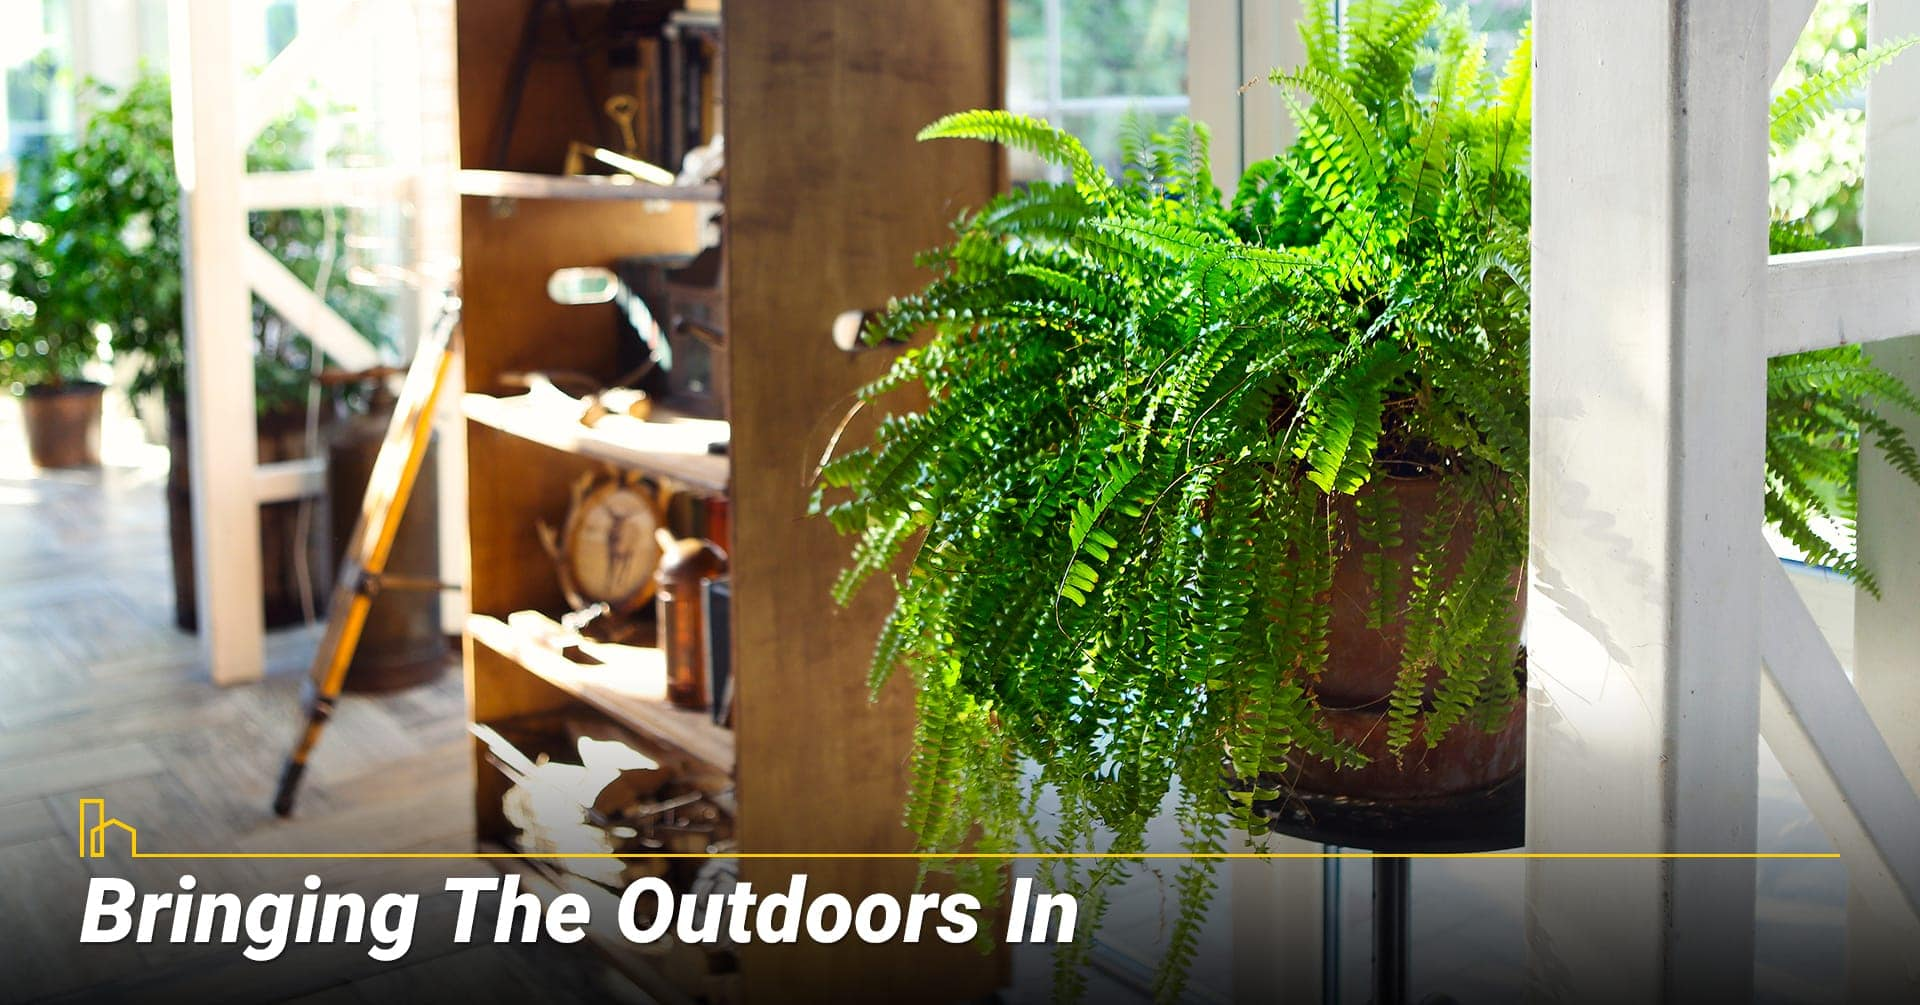 Bringing The Outdoors In, add some plants